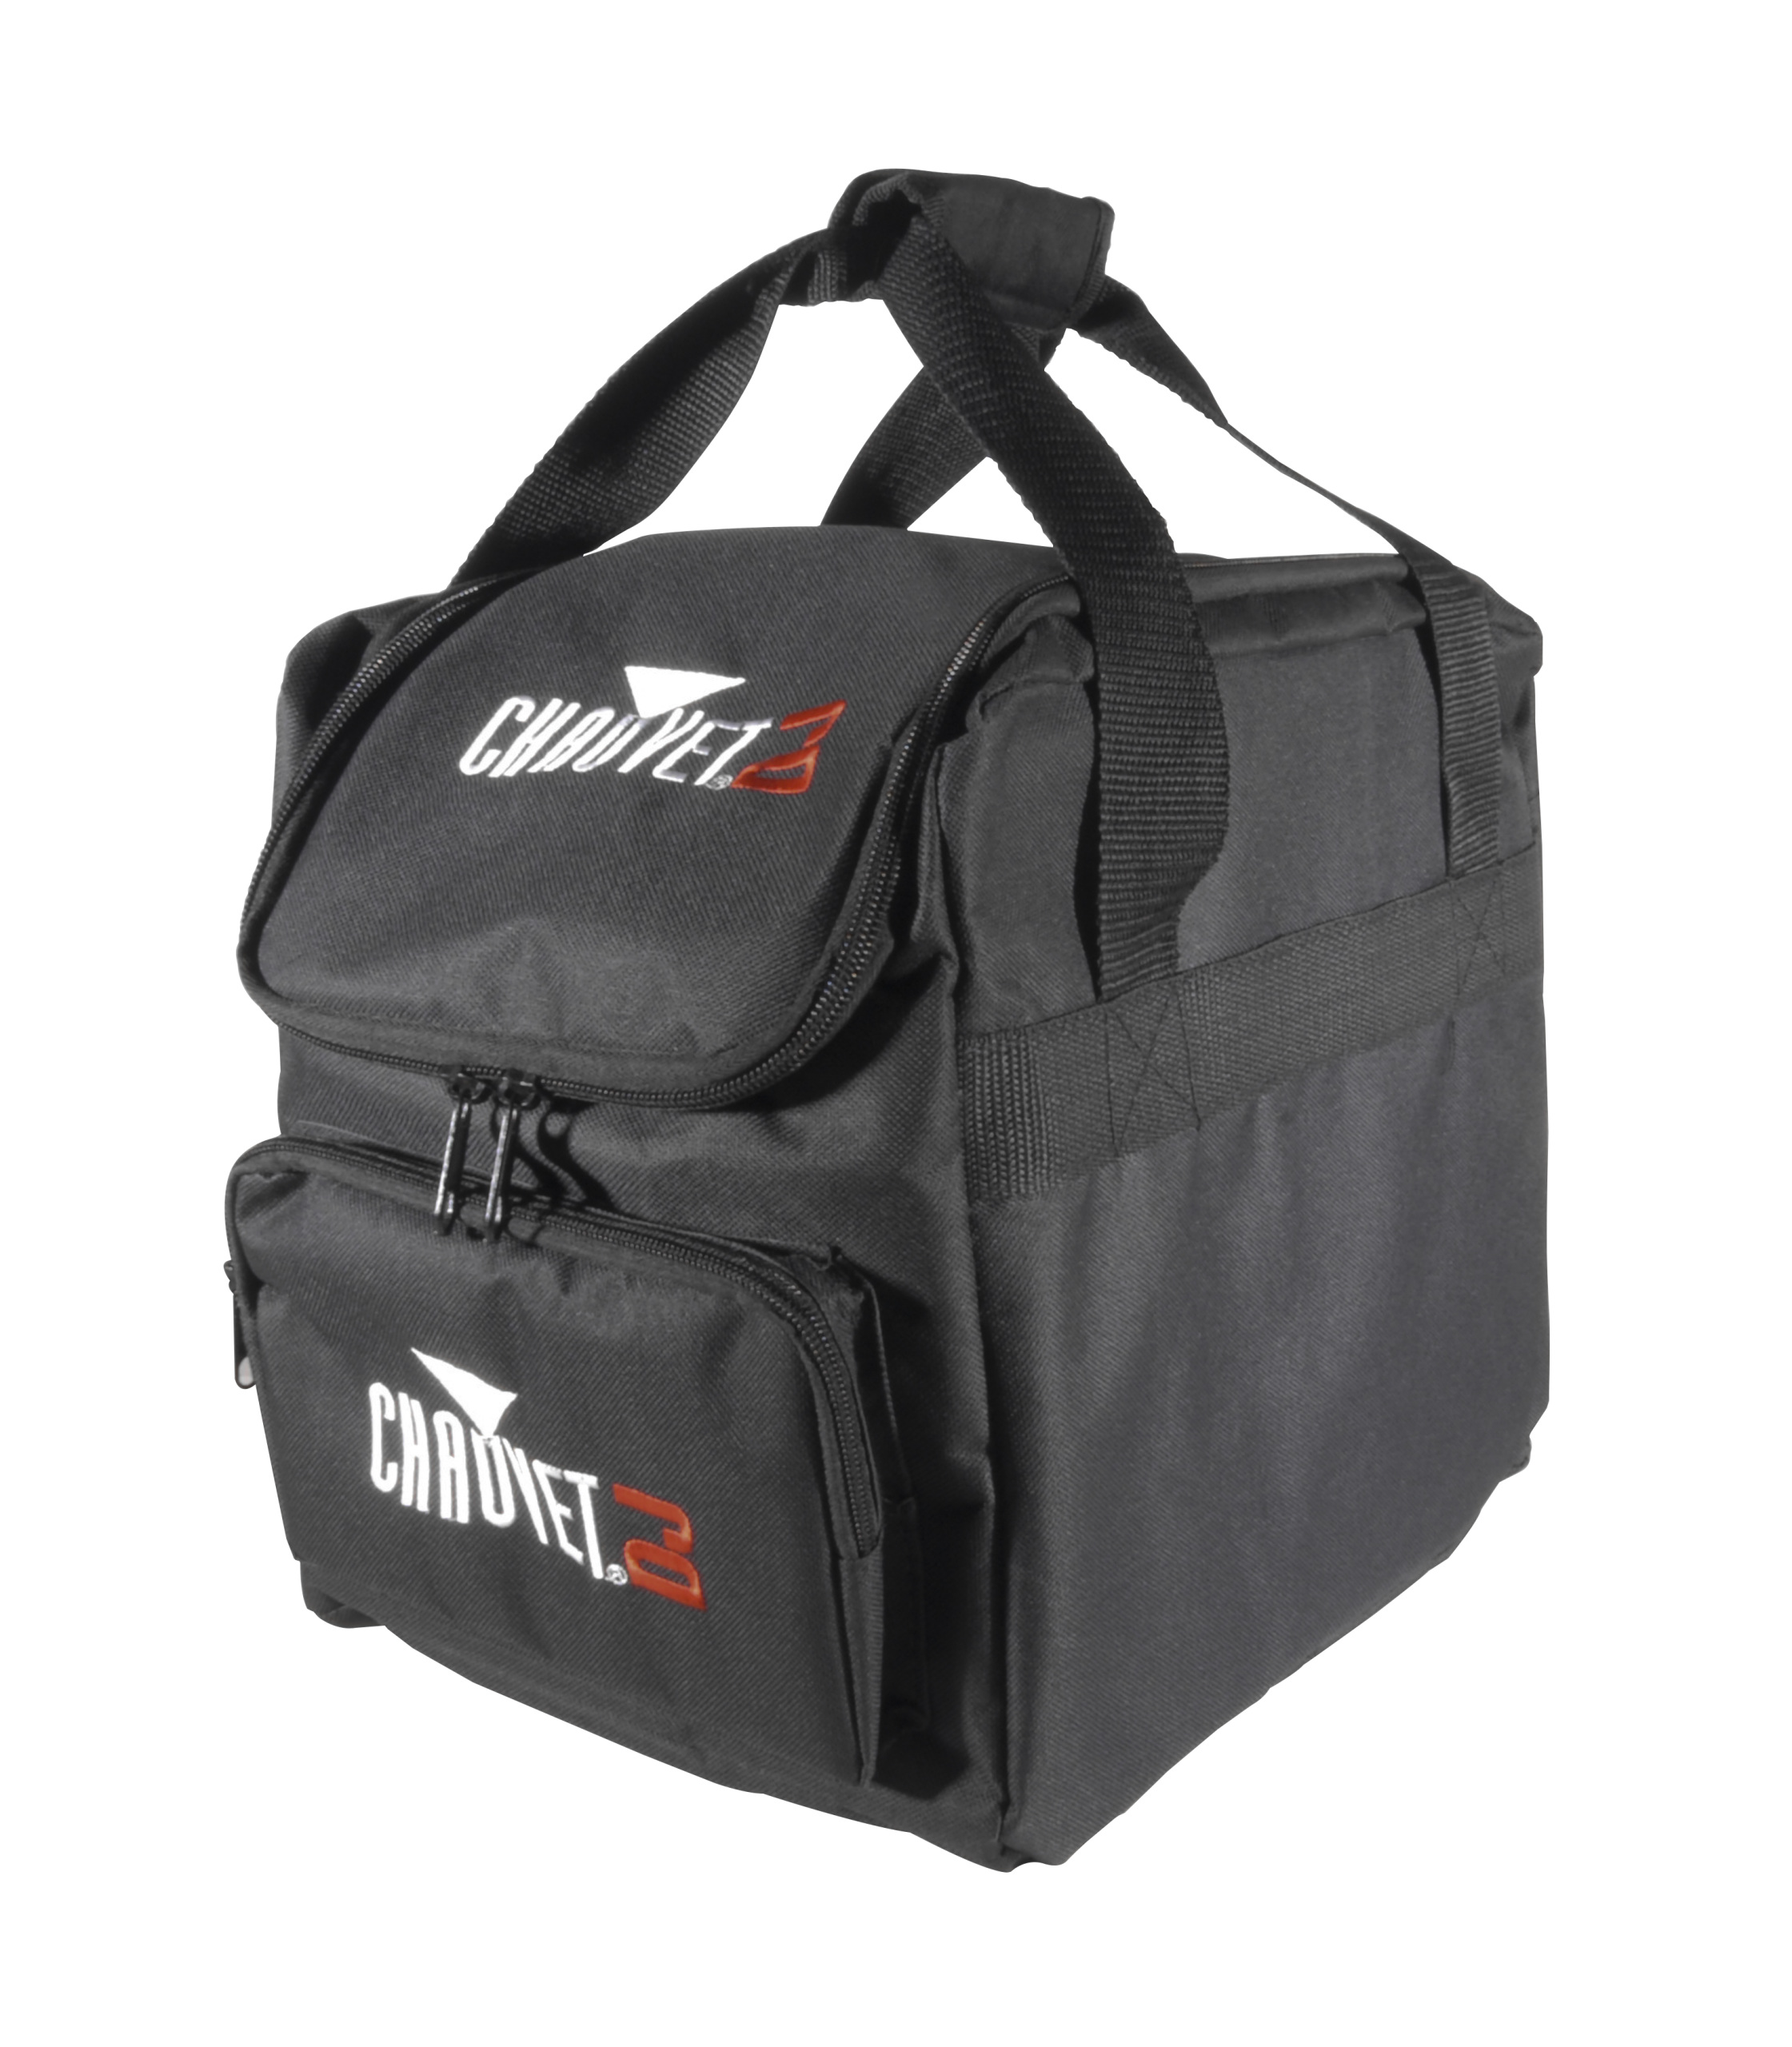 Chauvet CHS-25 VIP Light Gear Bag